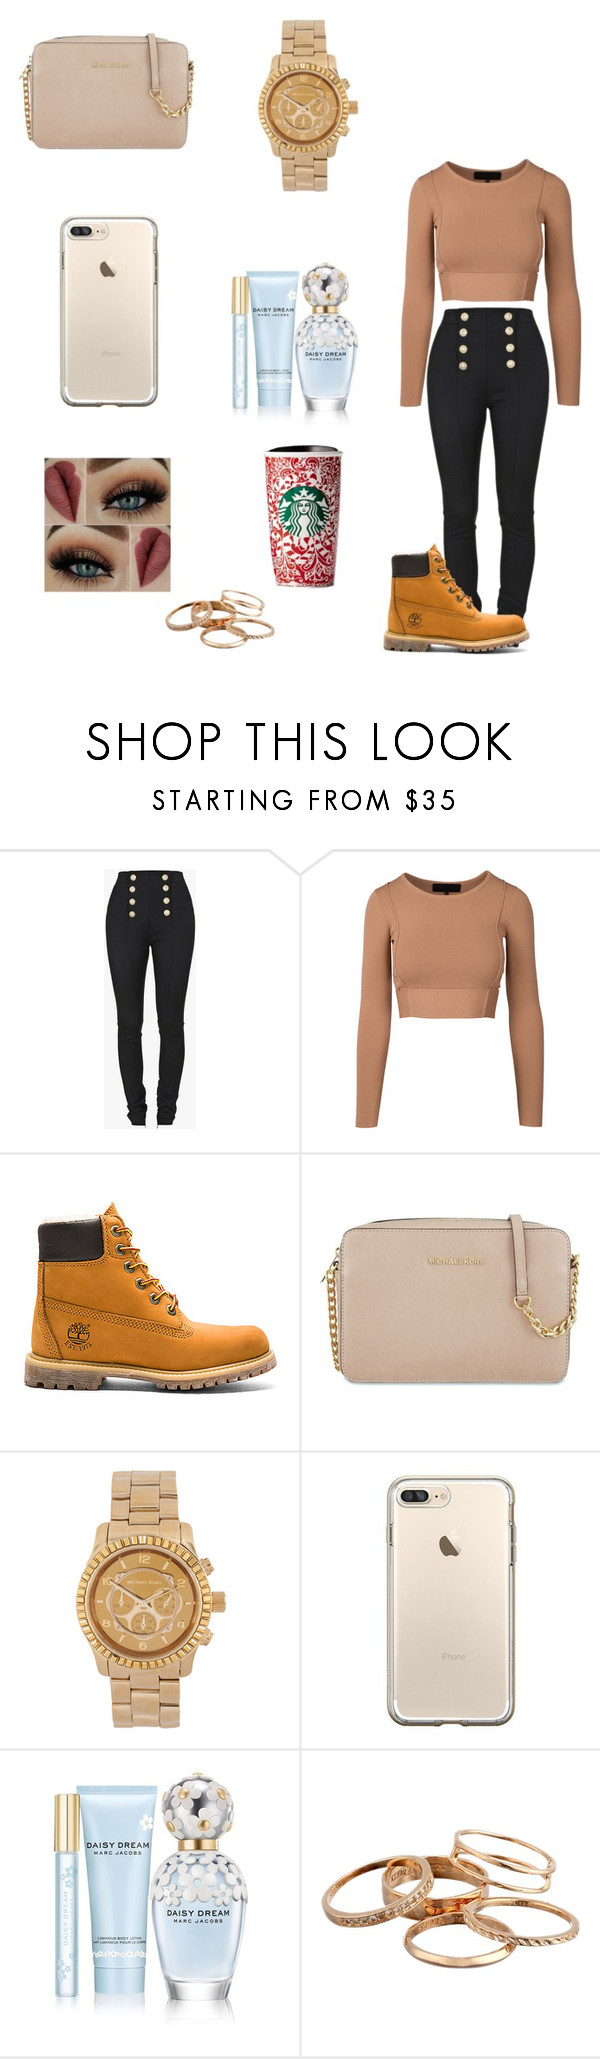 """Nude 👆🏽"" by dajahknox ❤ liked on Polyvore featuring Balmain, Timberland, MICHAEL Michael Kors, Michael Kors, Marc Jacobs and Kendra Scott"